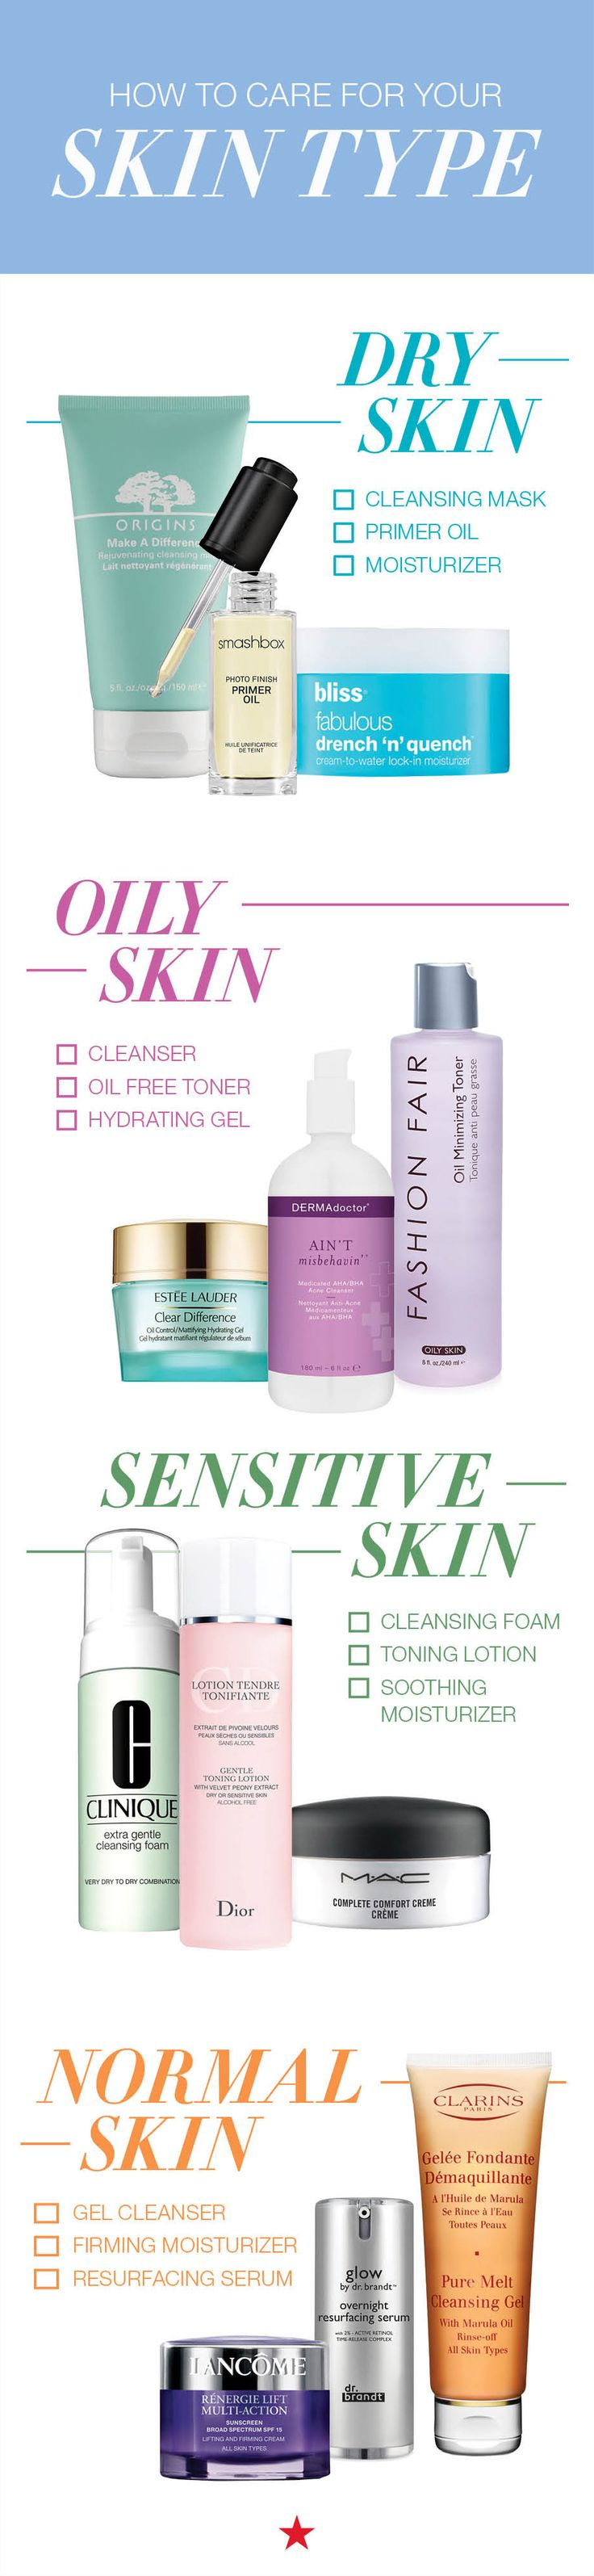 Newsflash Not all skincare routines should be the same